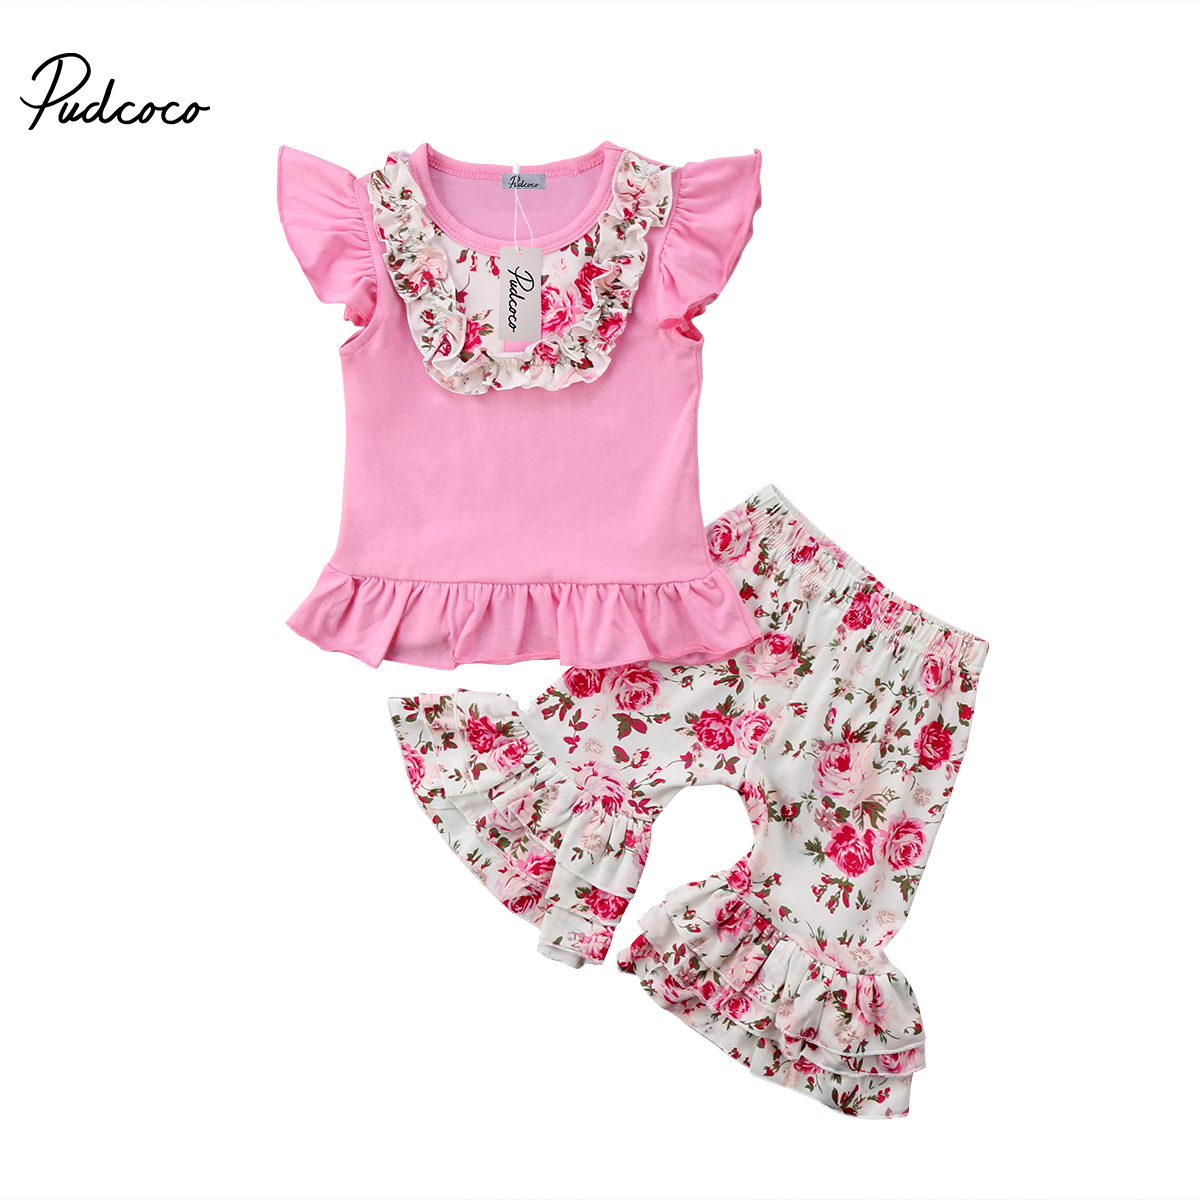 Фото Floral Toddler Kid Baby Girl Clothes Sets T-shirt Top Short Sleeve Ruffle Pants Cotton Cute 2pcs Clothing Set Girls 2-7T